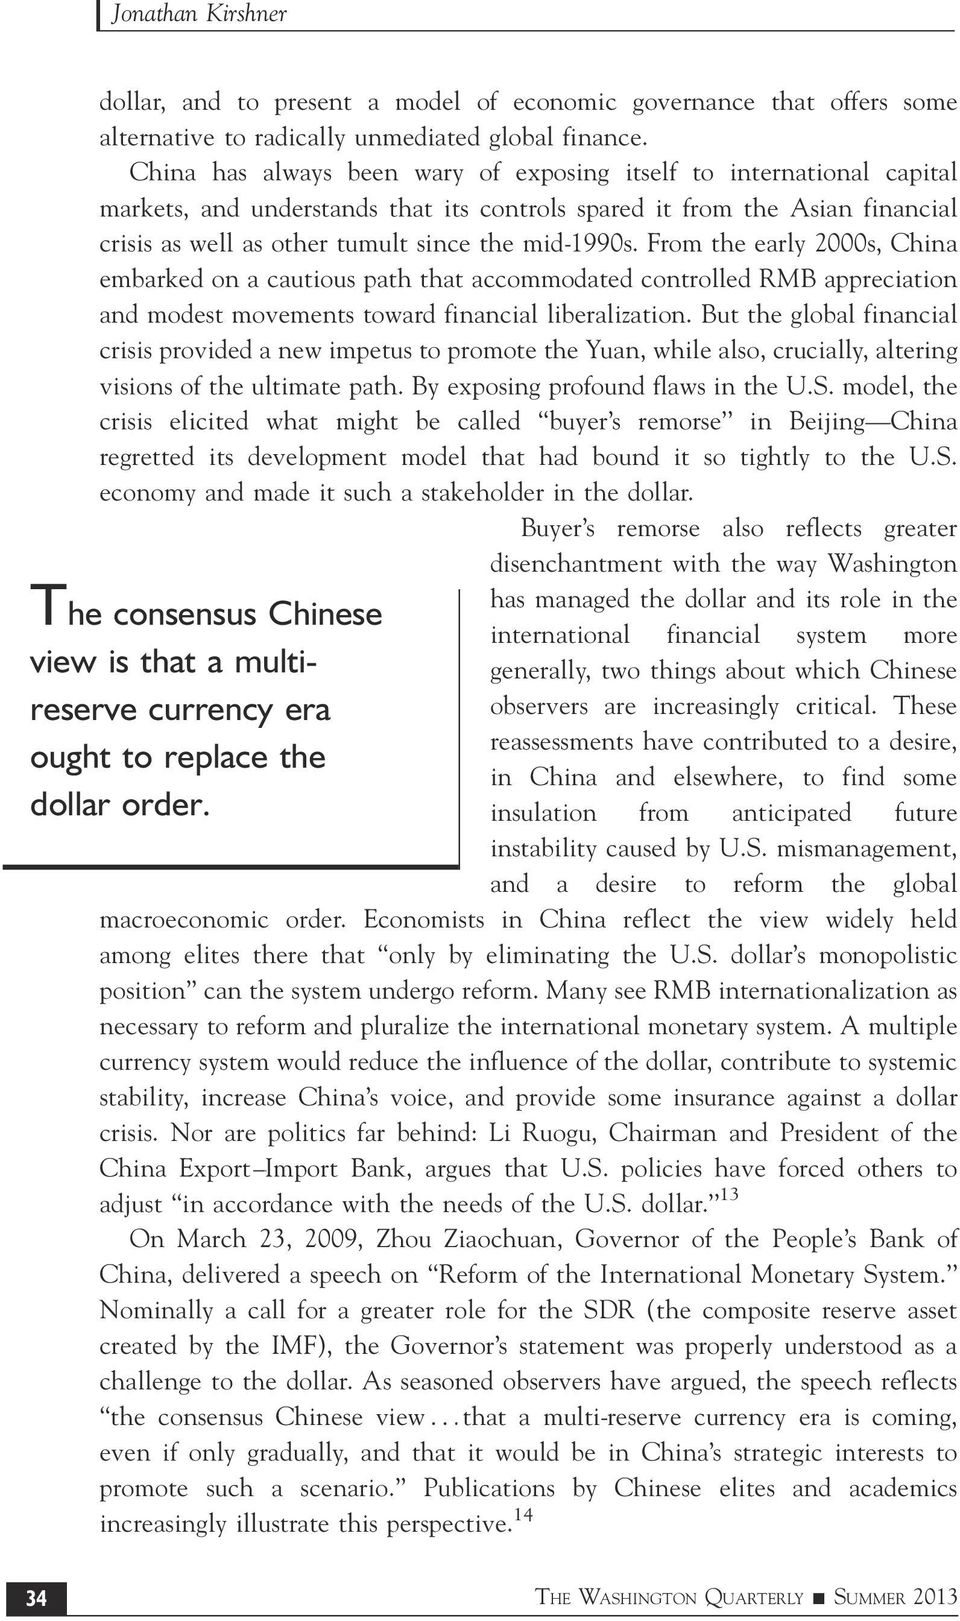 mid-/1990s. From the early 2000s, China embarked on a cautious path that accommodated controlled RMB appreciation and modest movements toward financial liberalization.